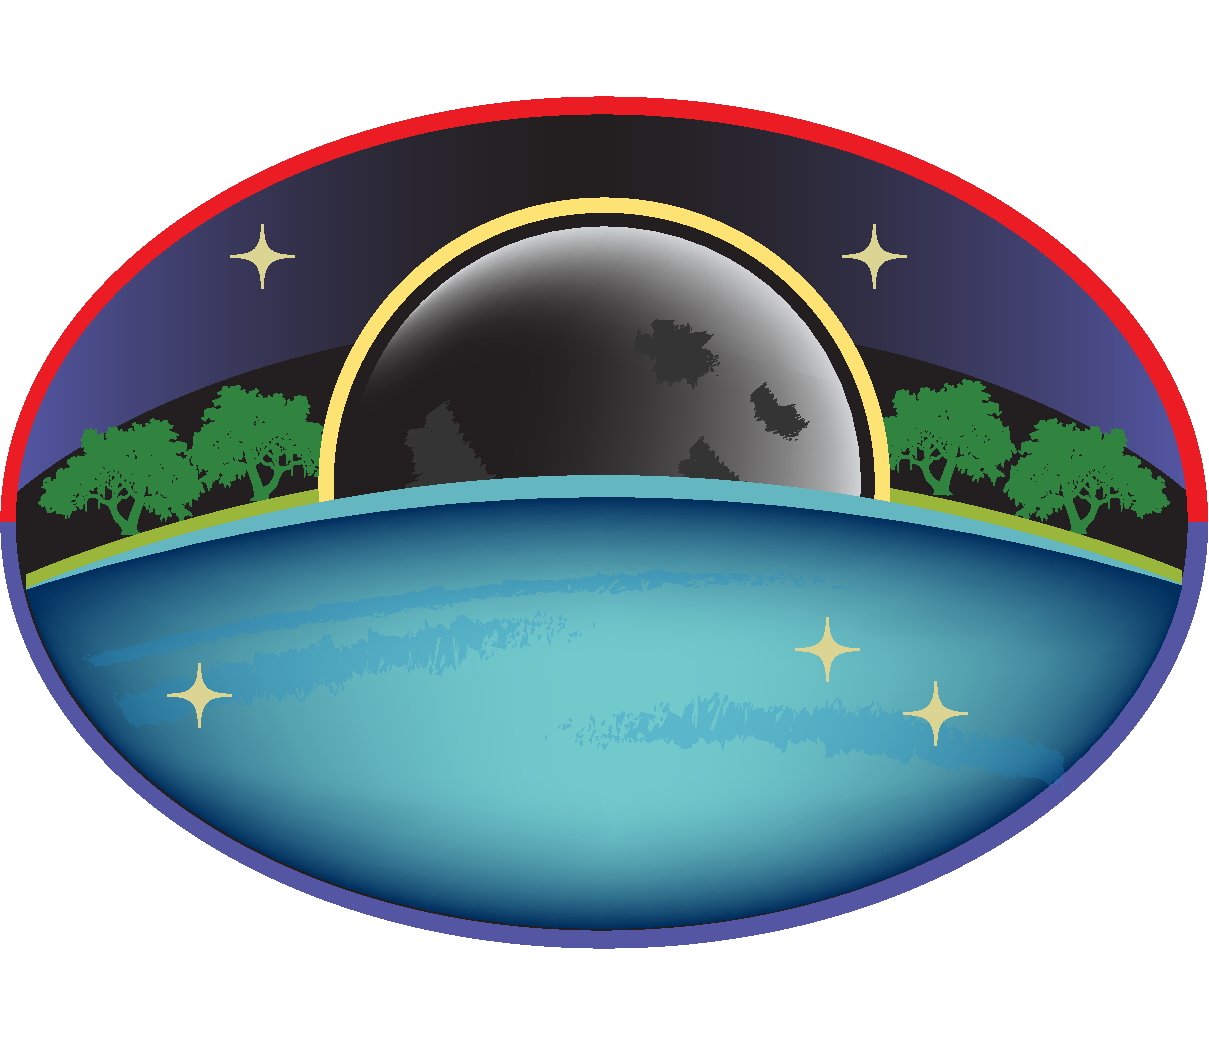 Groom Lake Media